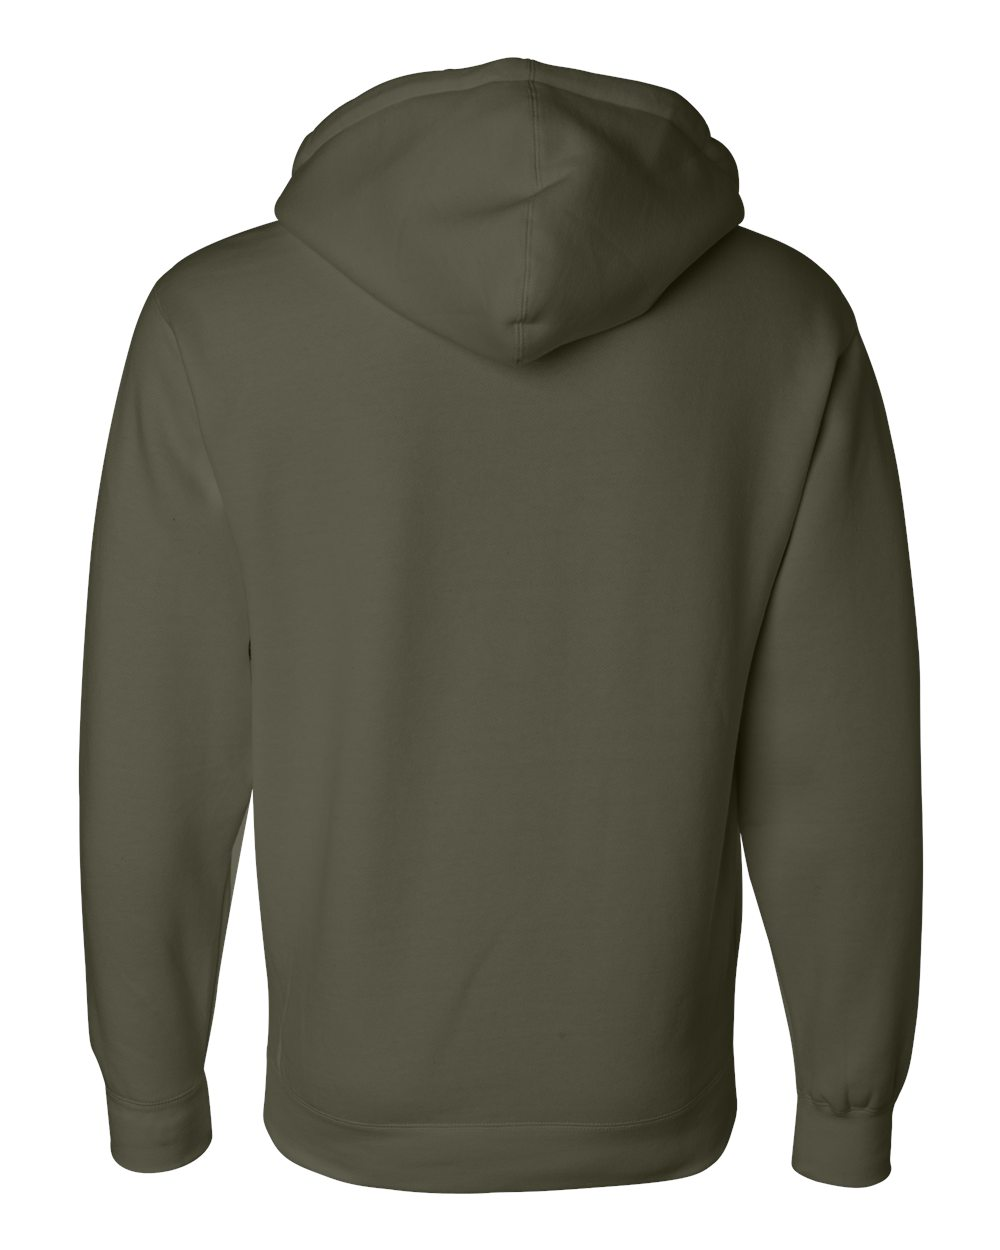 Independent-Trading-Co-Mens-Hooded-Pullover-Sweatshirt-IND4000-up-to-3XL miniature 10